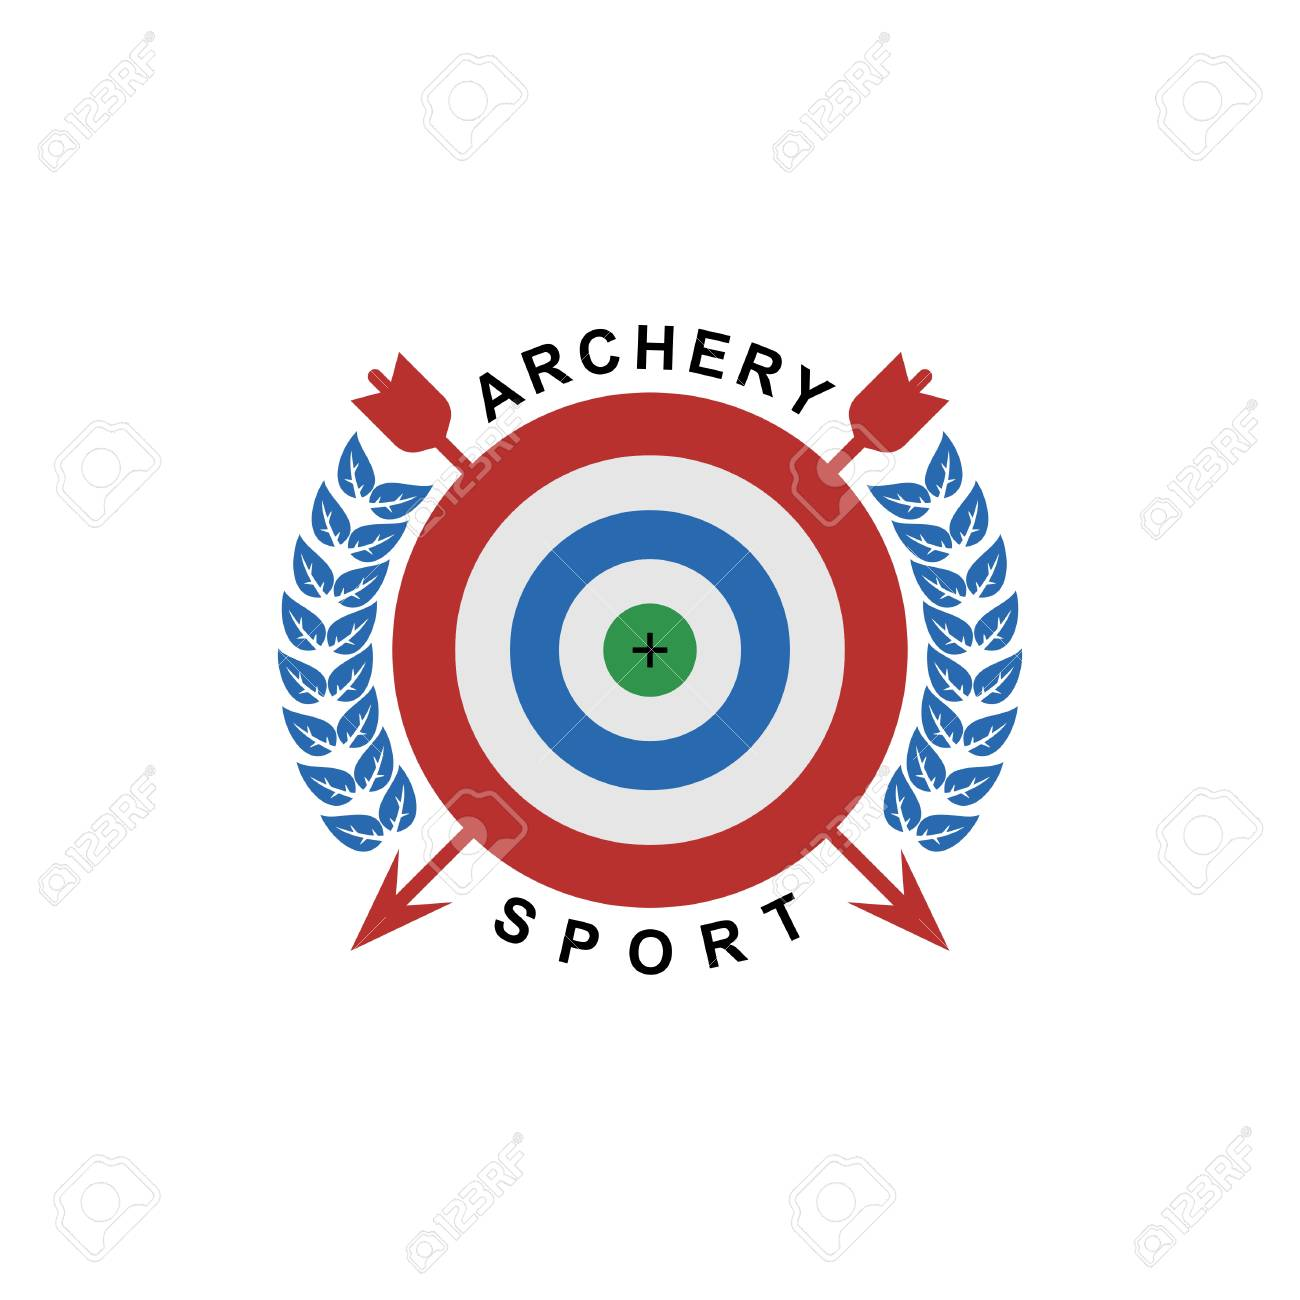 Archery logo template isolated on white background